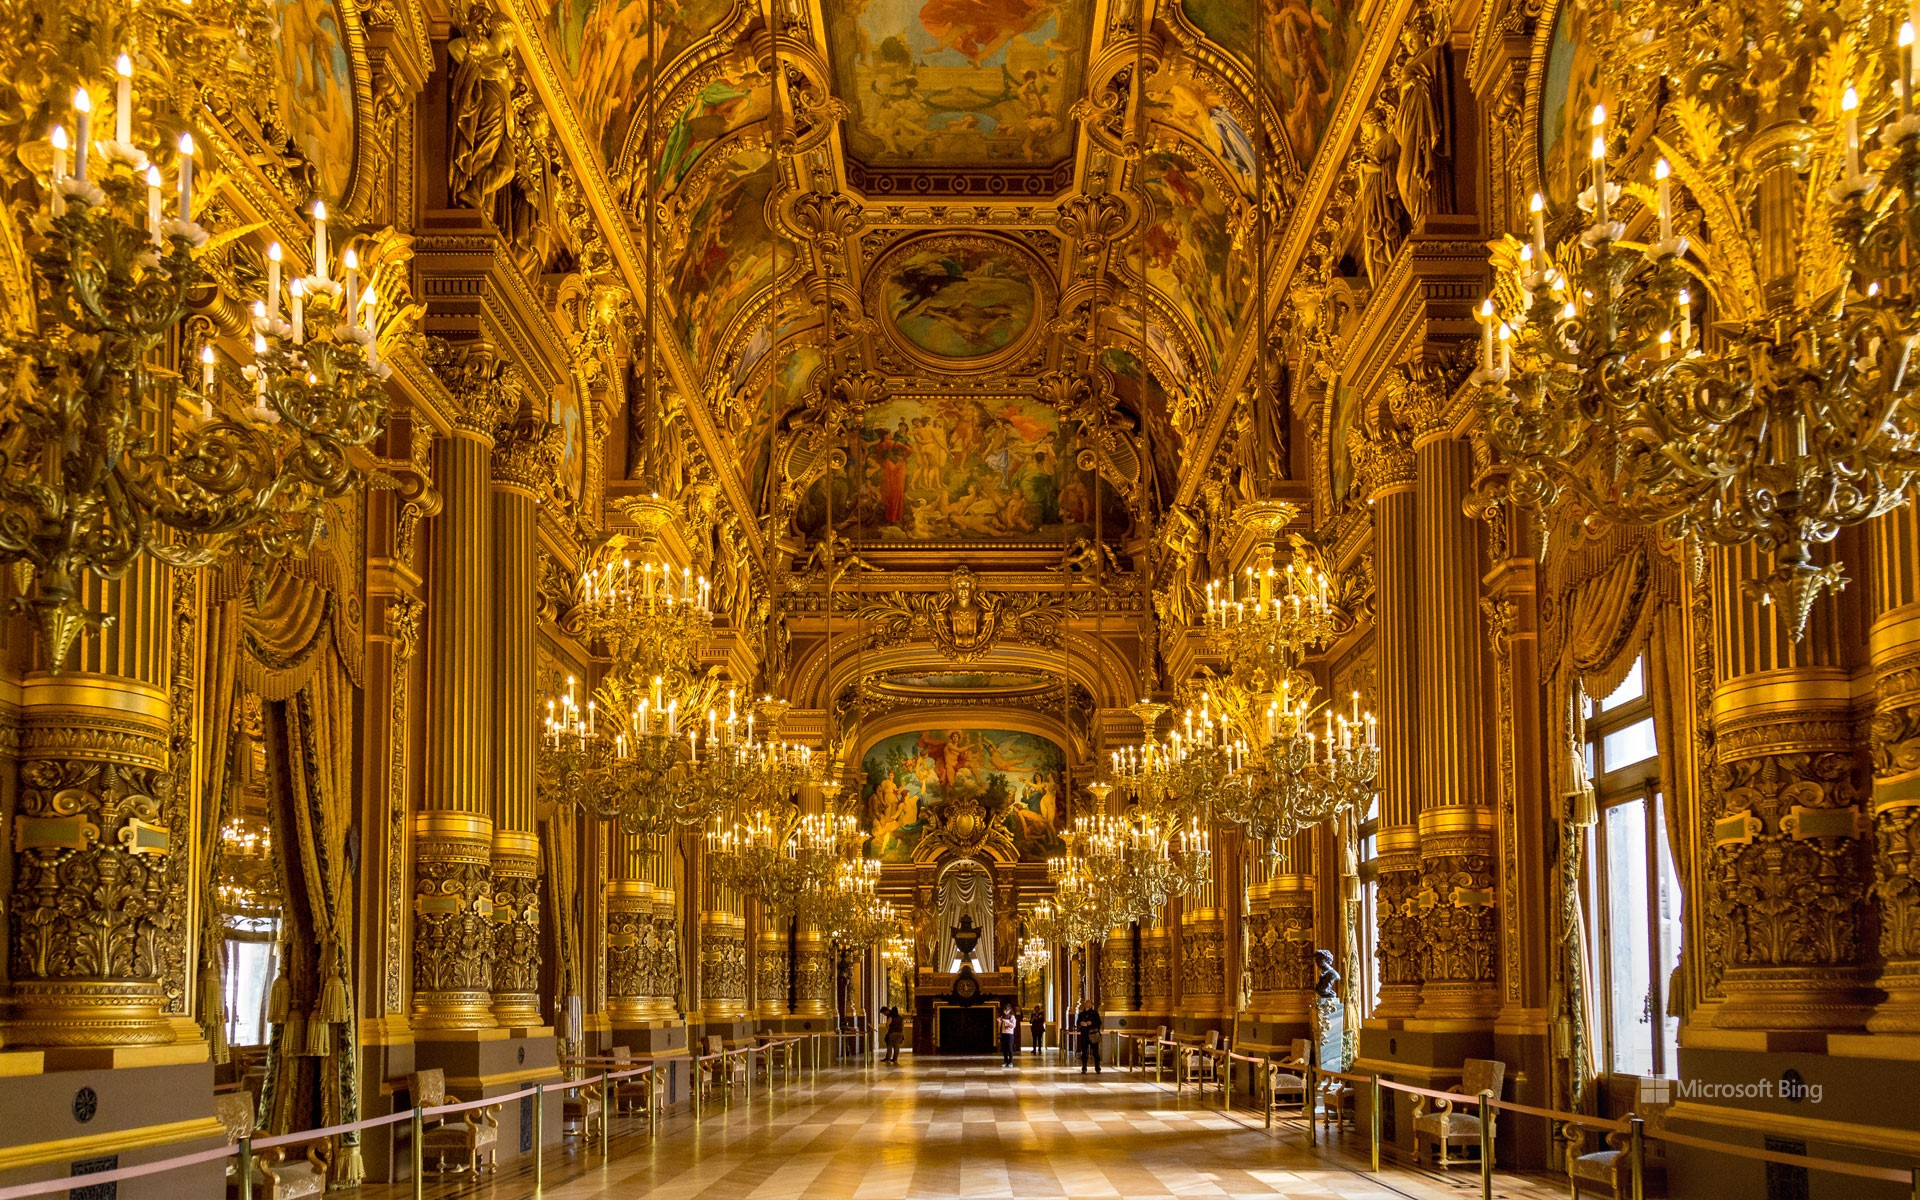 Interior view of the Opéra national de Paris Garnier taken on March 31, 2017, Paris